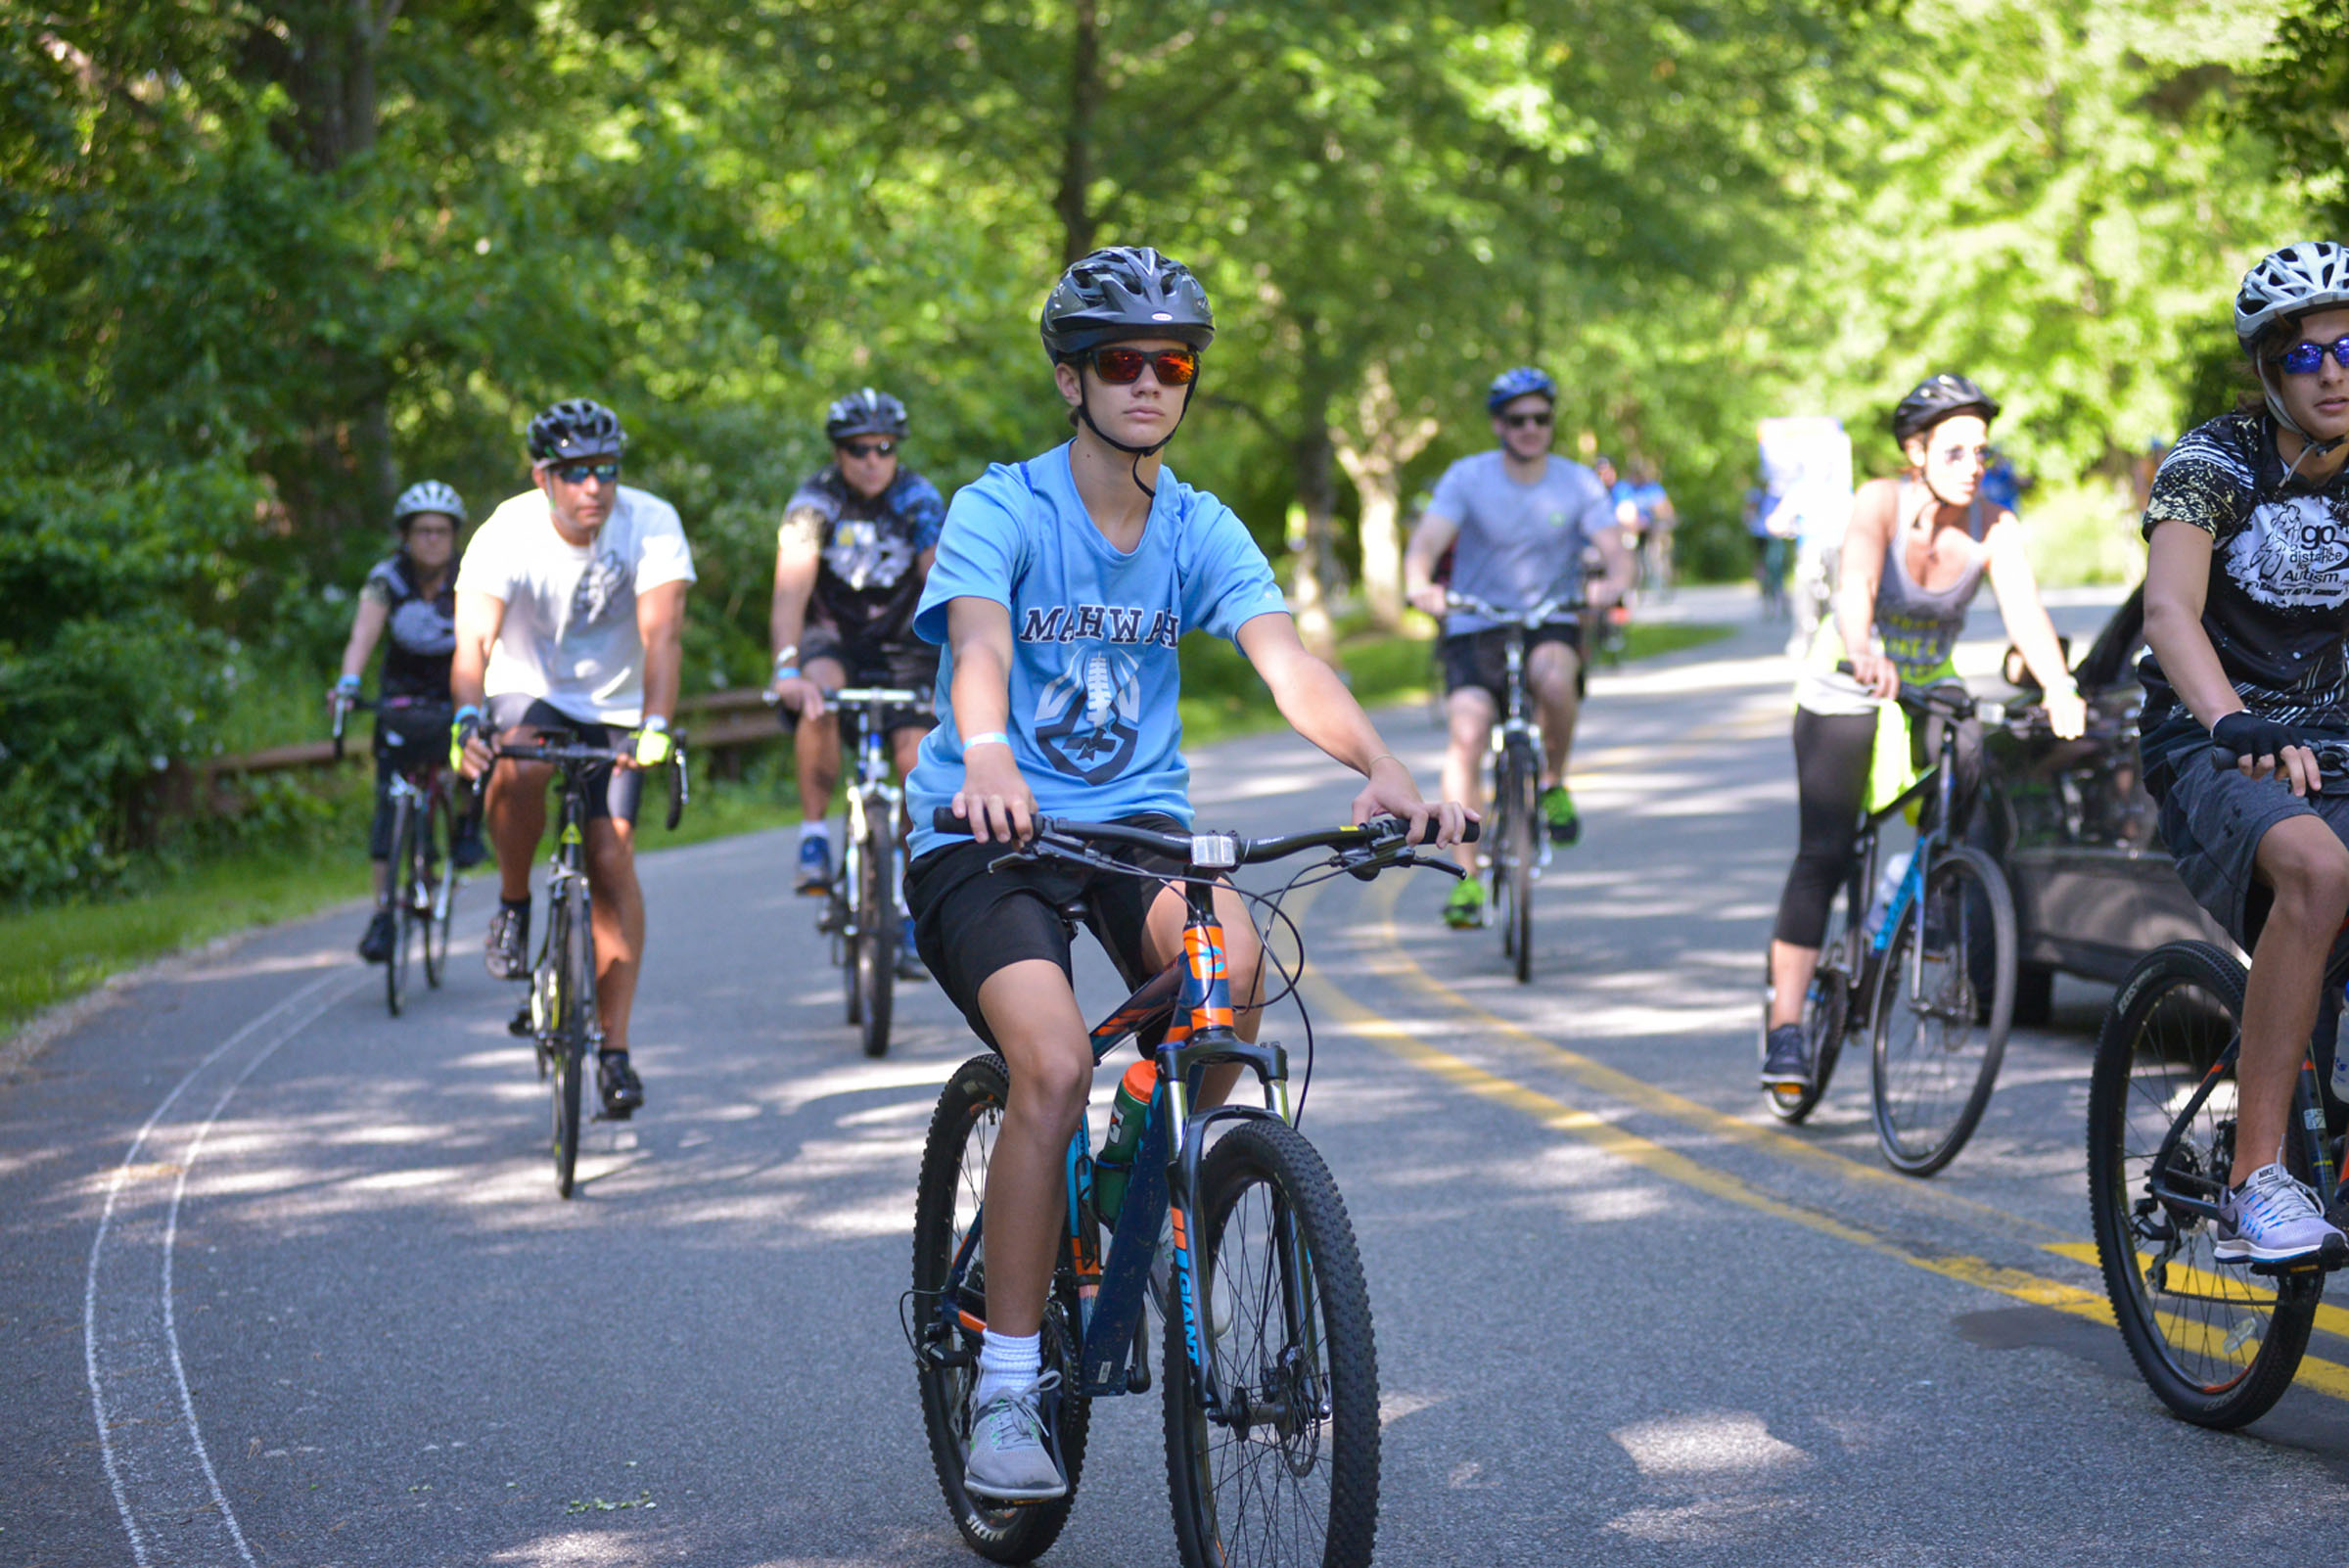 2017-06-04 GTD4A Charity Bike Ride - BCC - Paramus NJ-1897.jpg